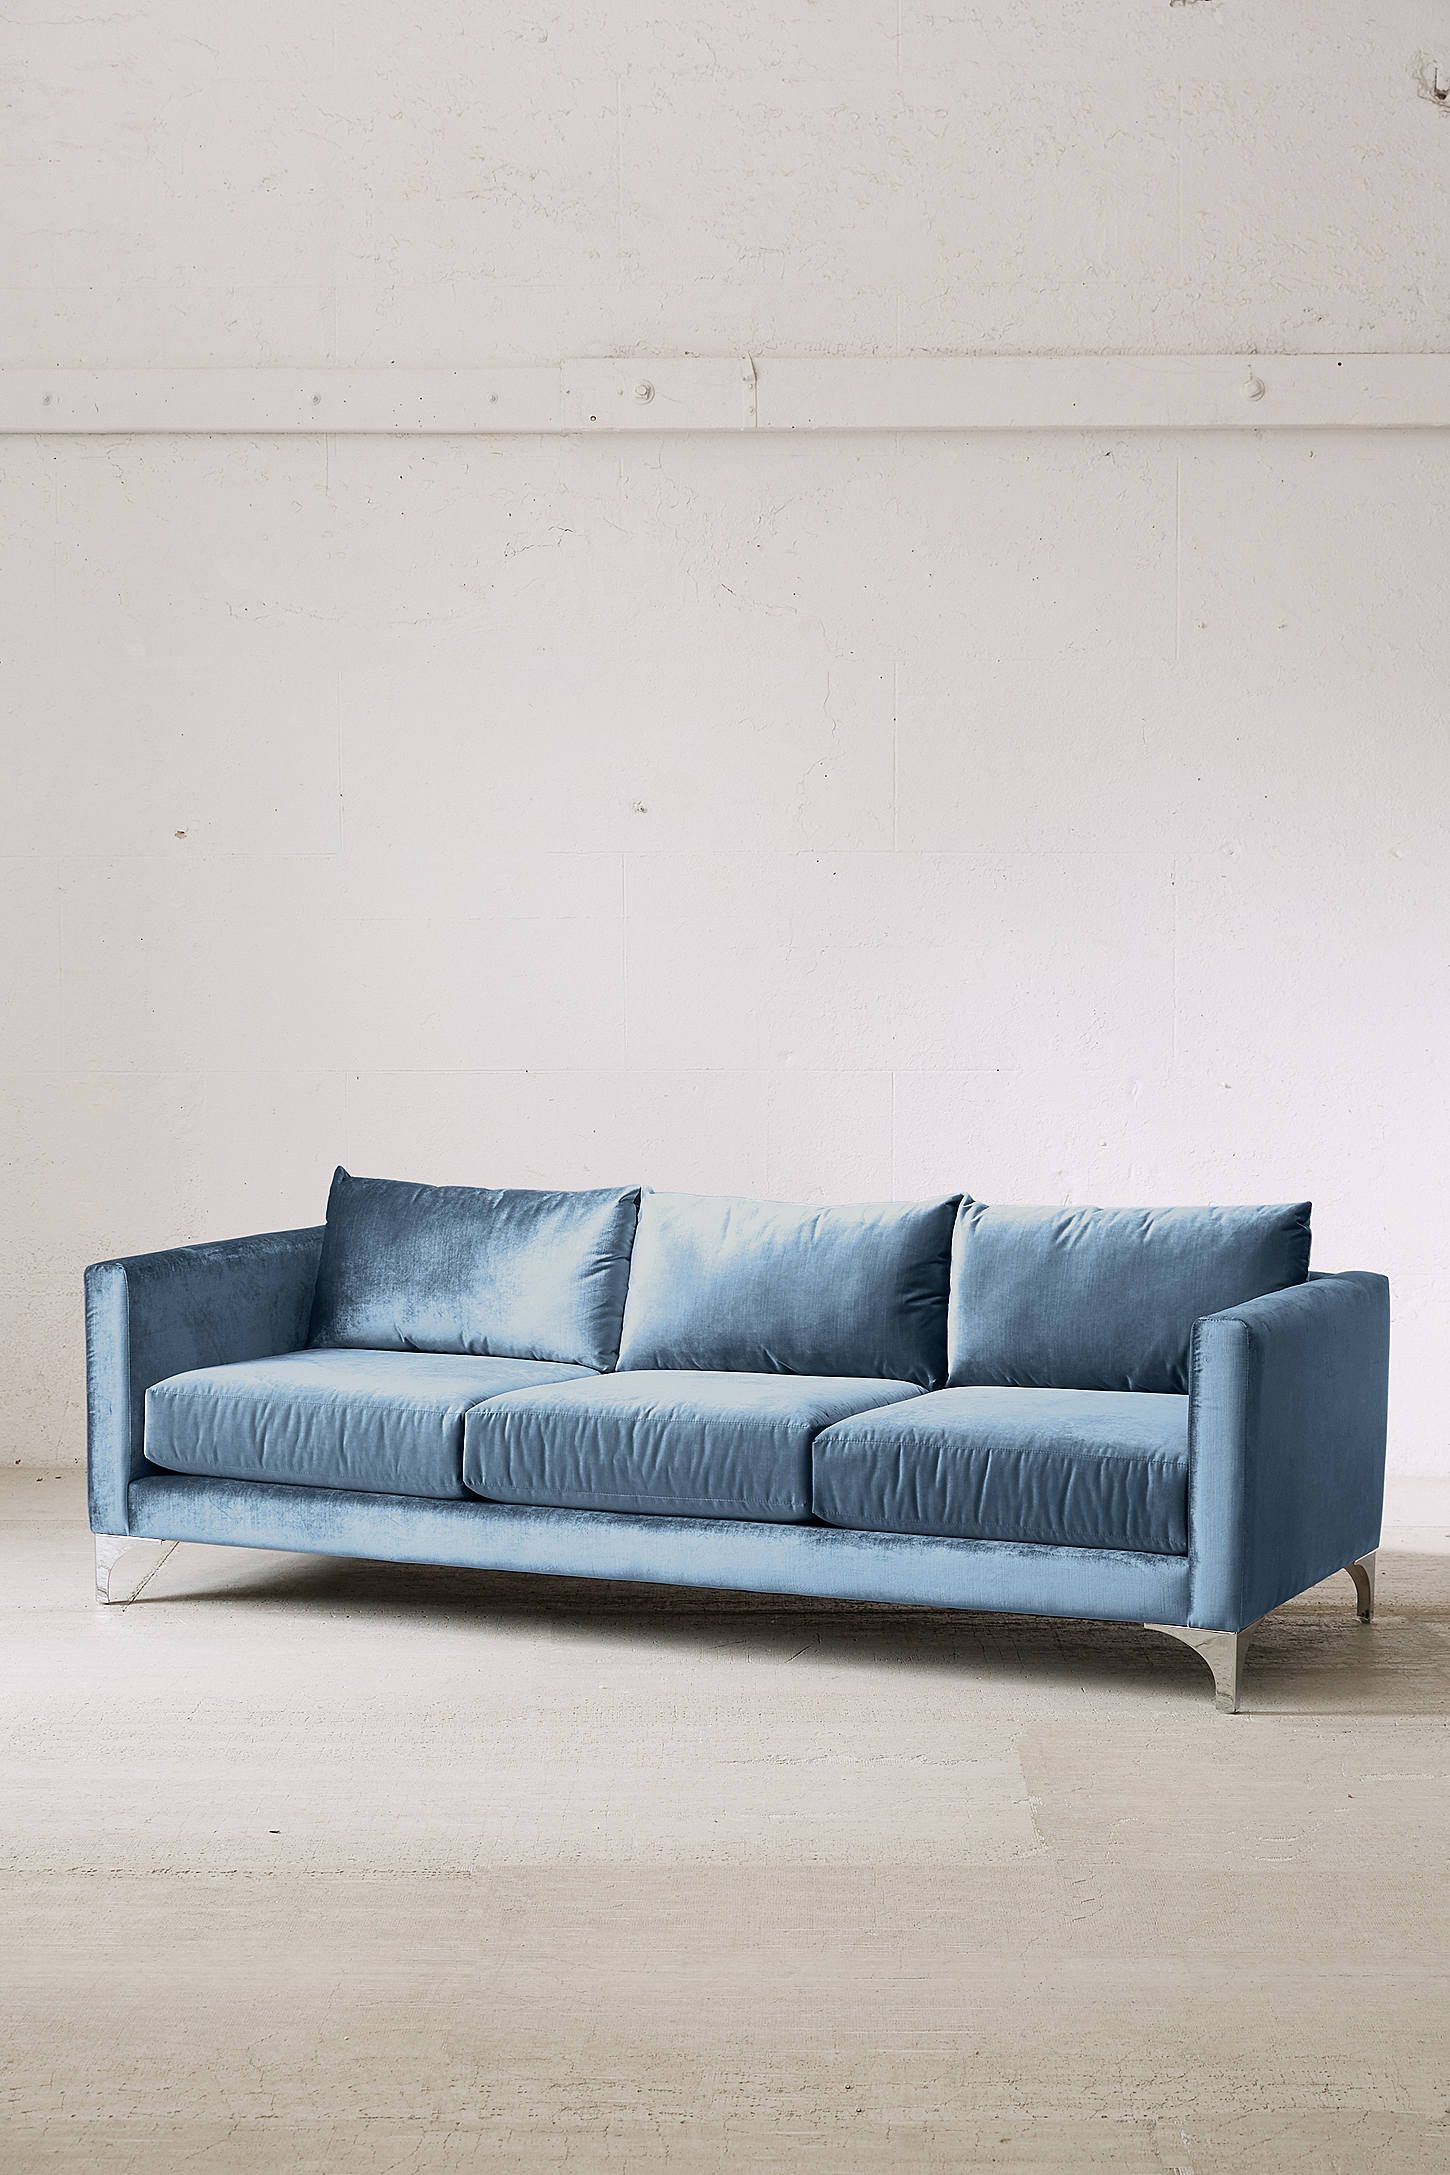 chamberlin velvet sofa | office designs, living rooms and room